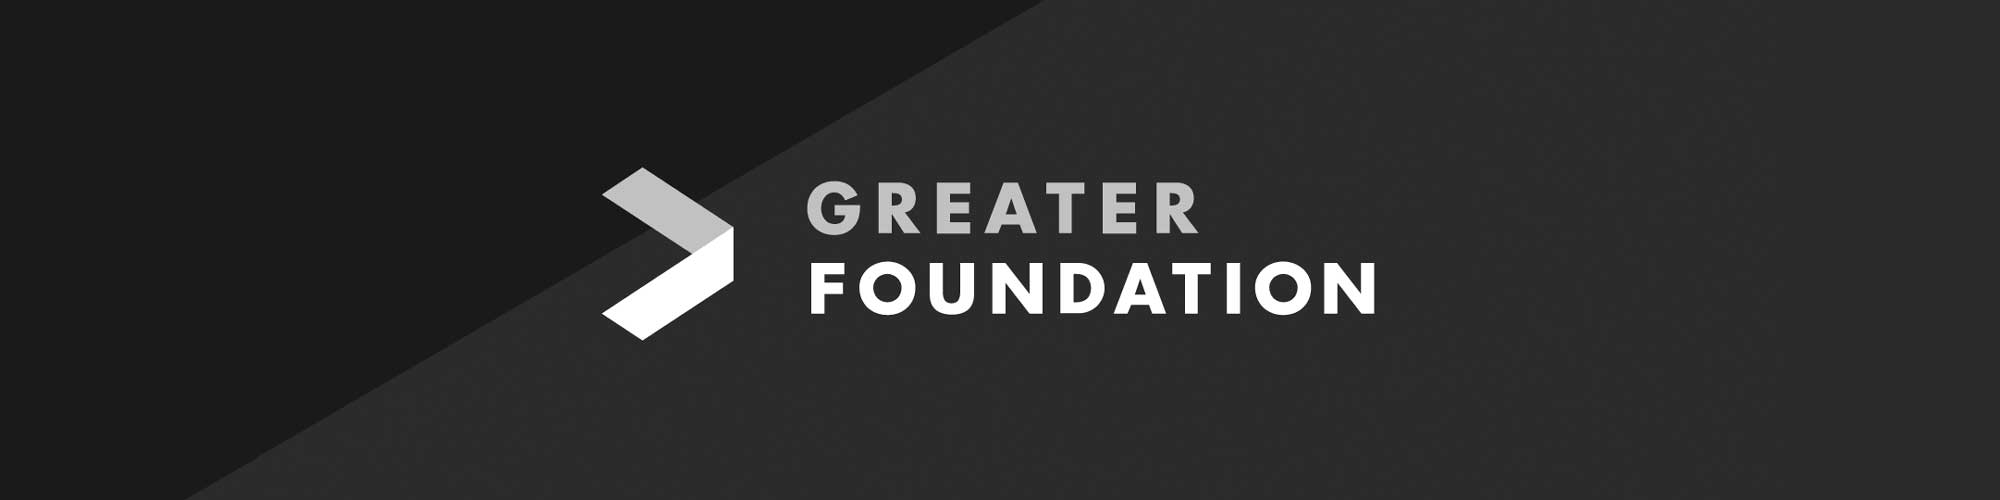 Greater foundation launch